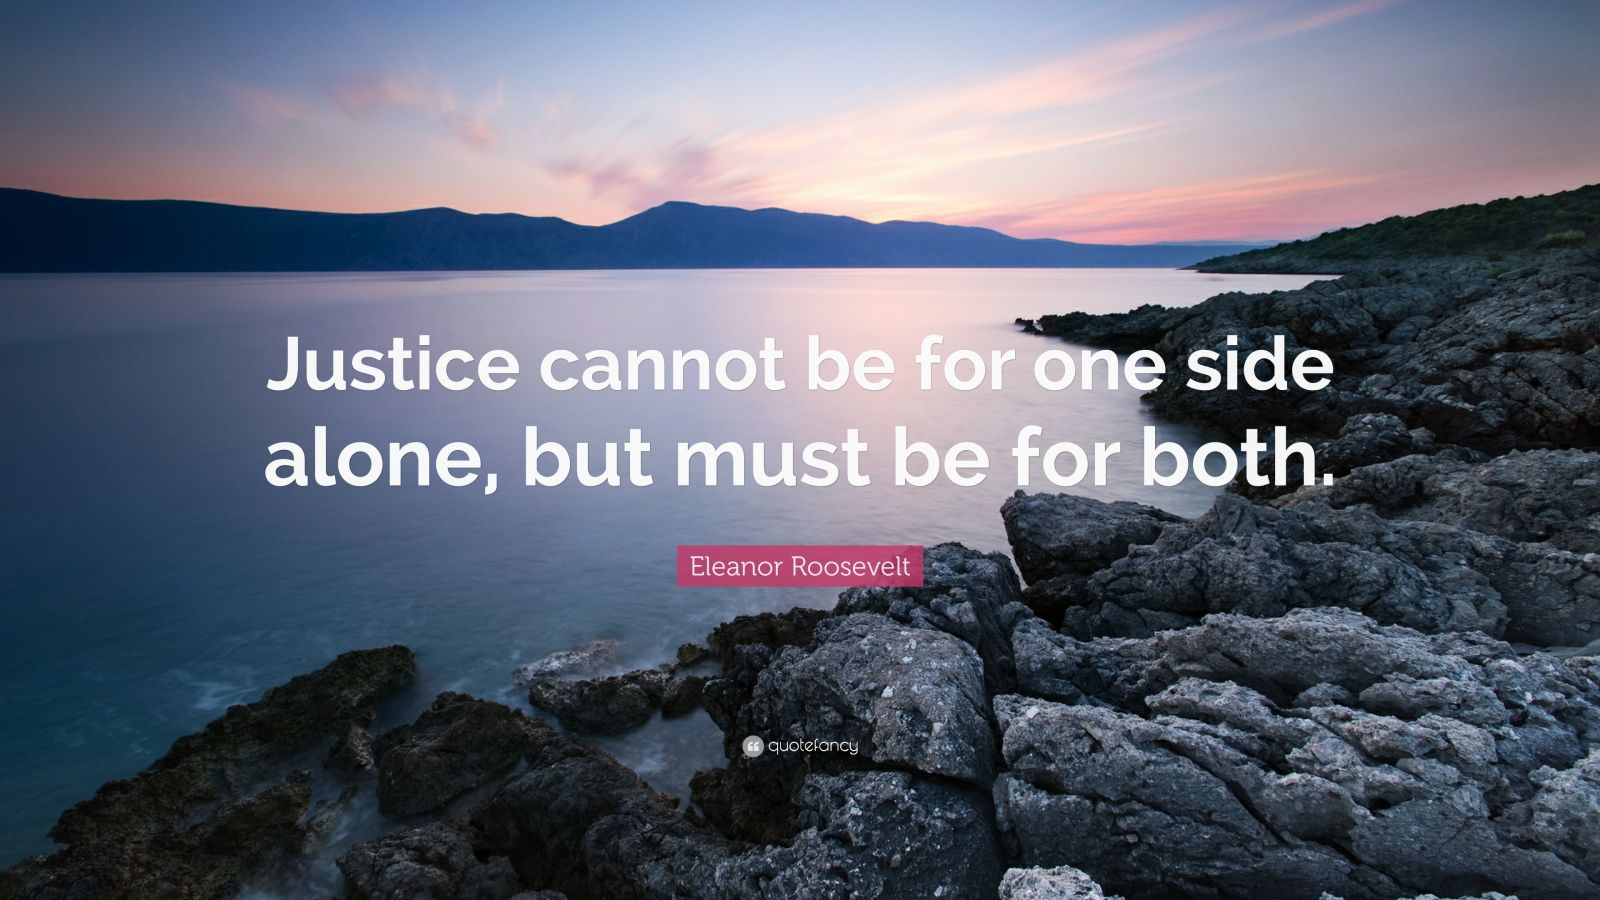 """Eleanor Roosevelt Quote: """"Justice cannot be for one side alone, but must be for both."""""""